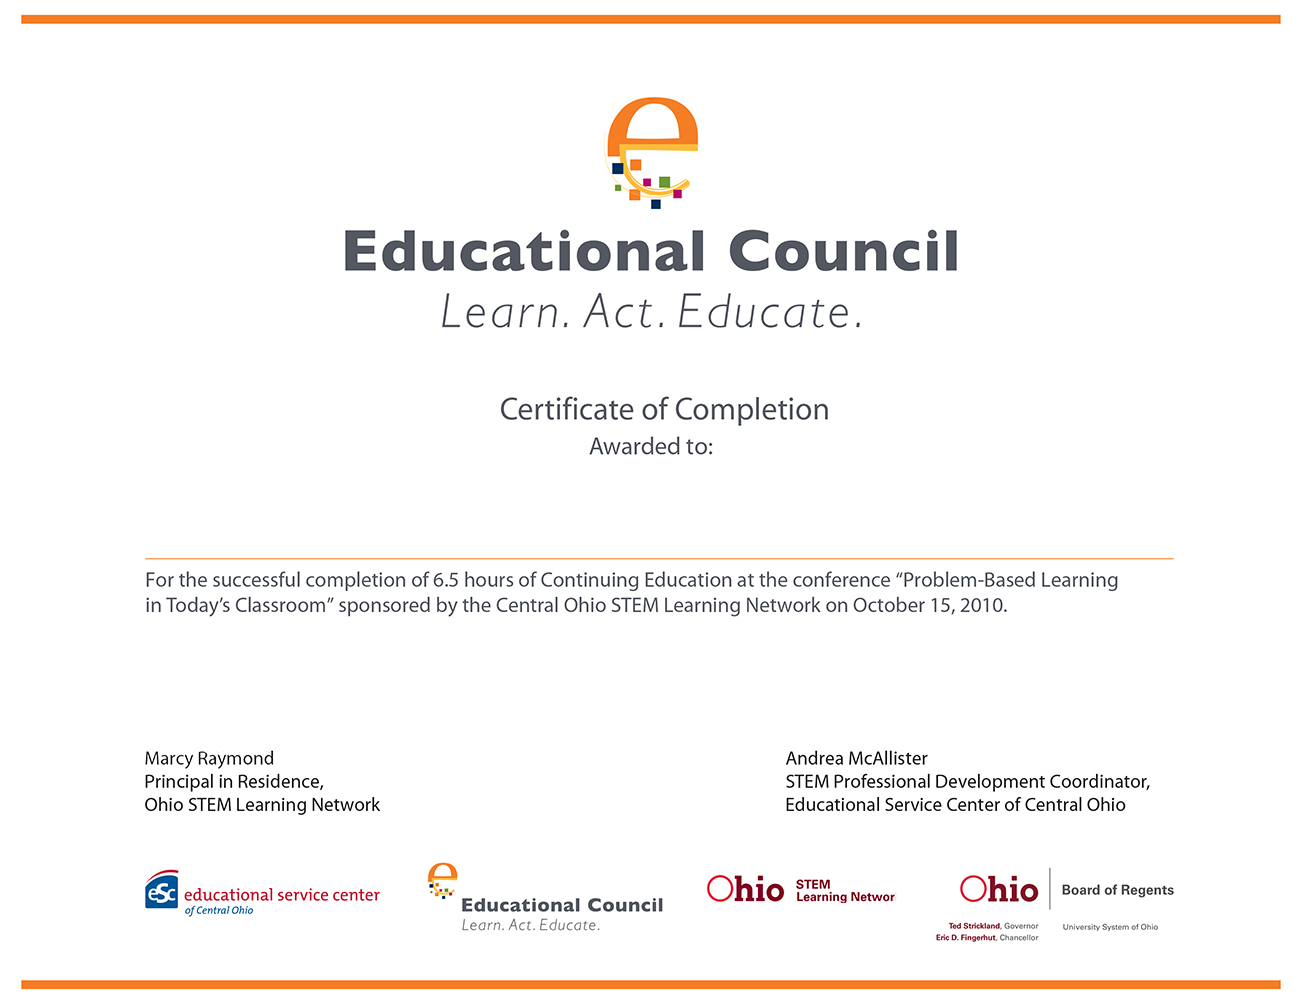 Education Council Foundation award certificate.